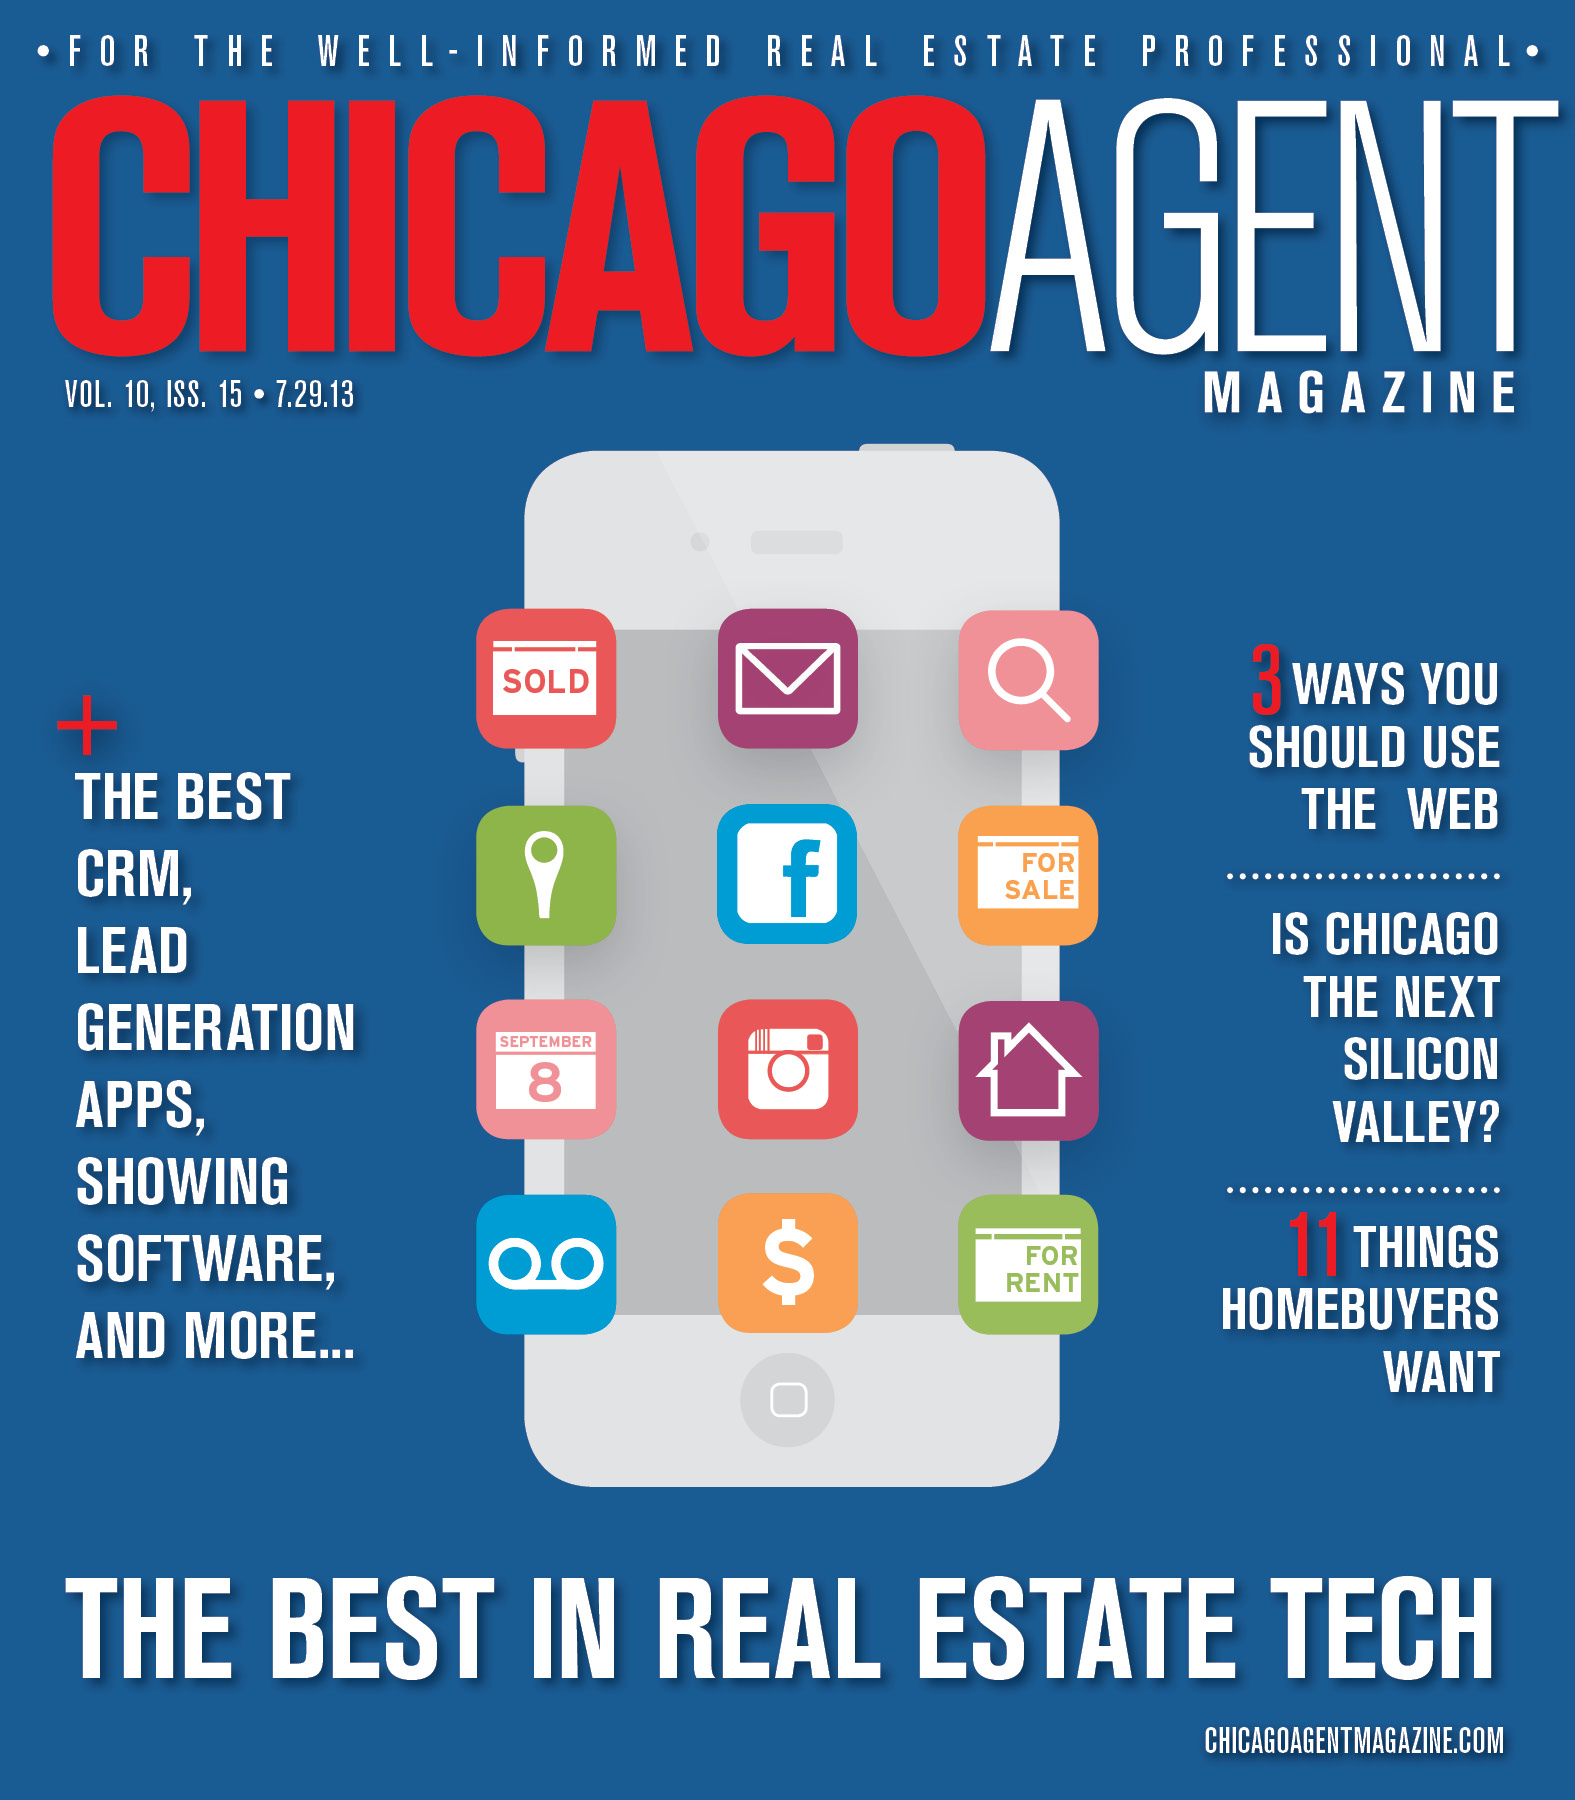 The Best in Tech in Real Estate - 7.29.13